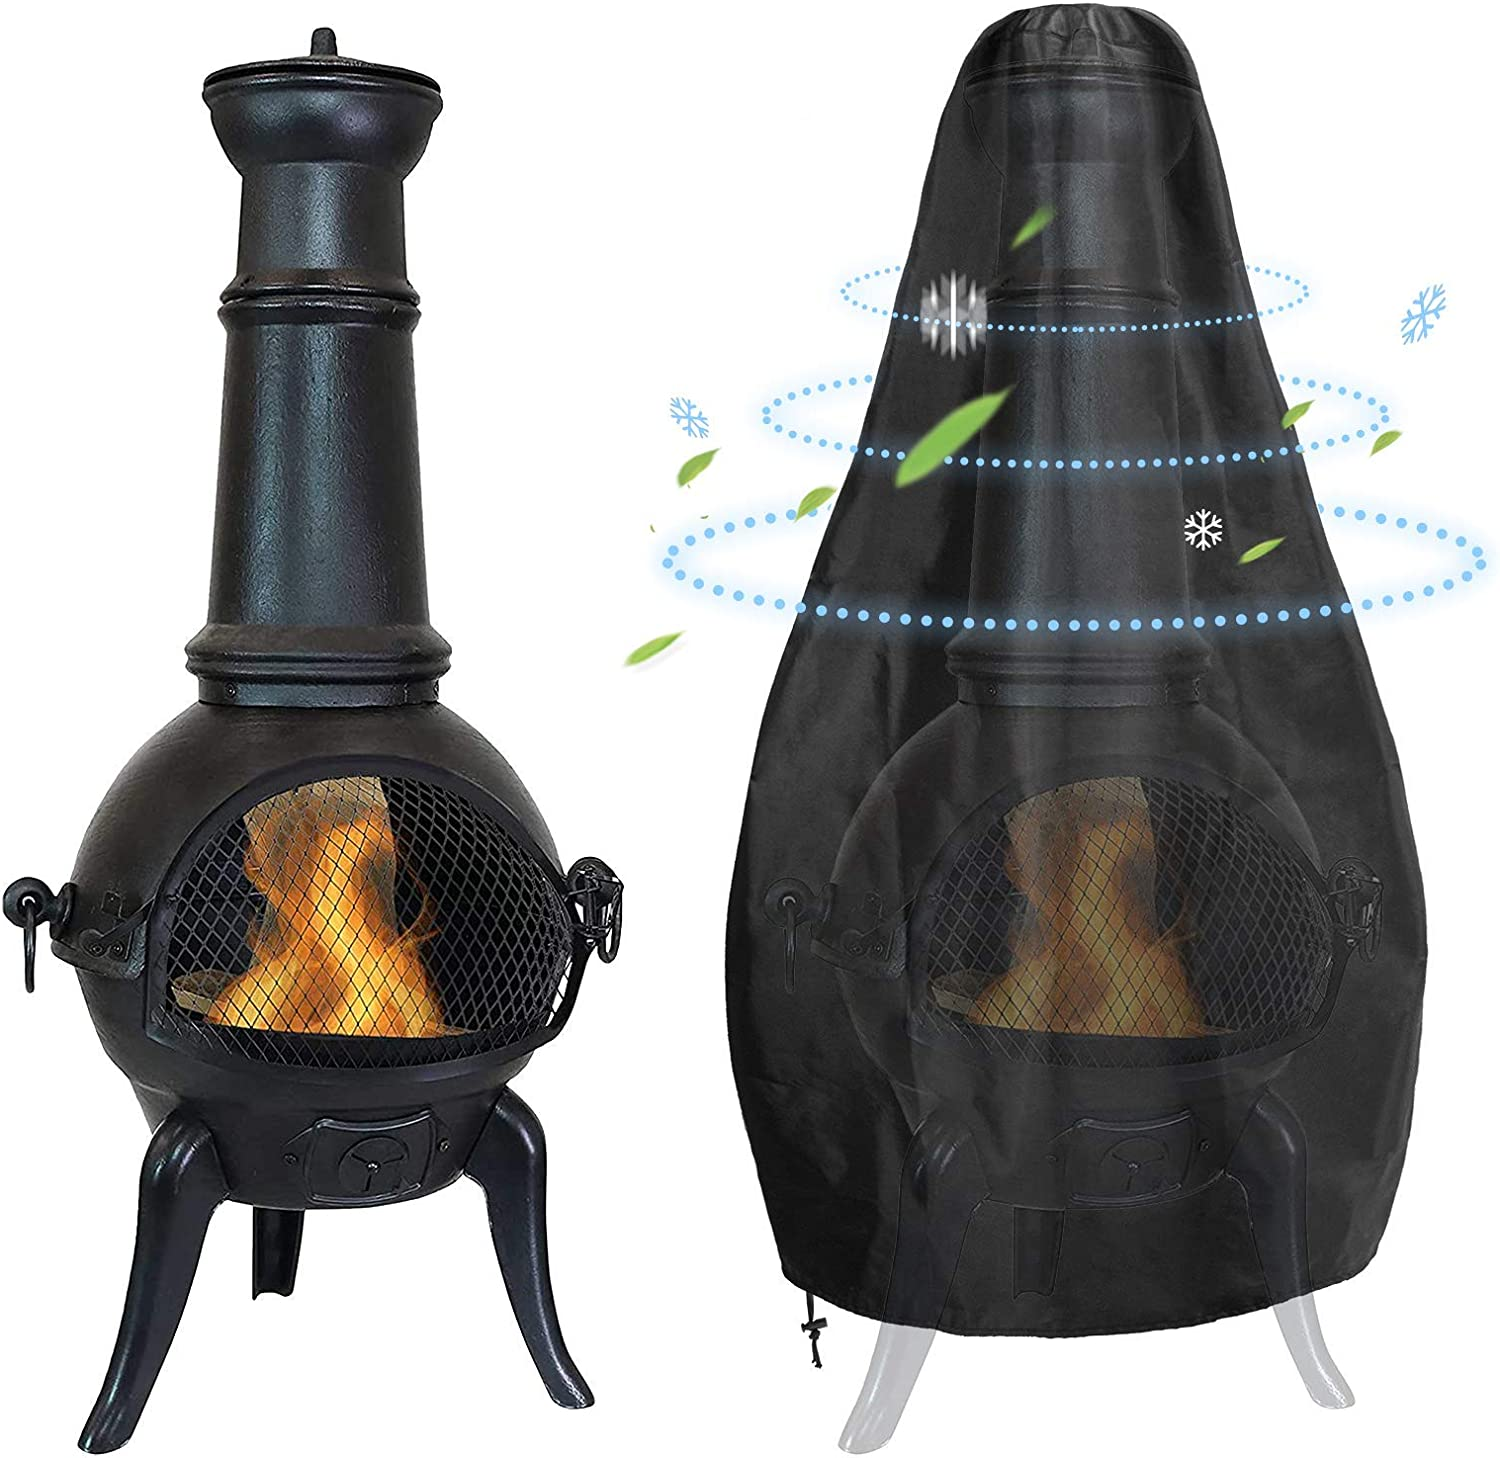 Waterproof Outdoor Round Base Chiminea Winter Cover